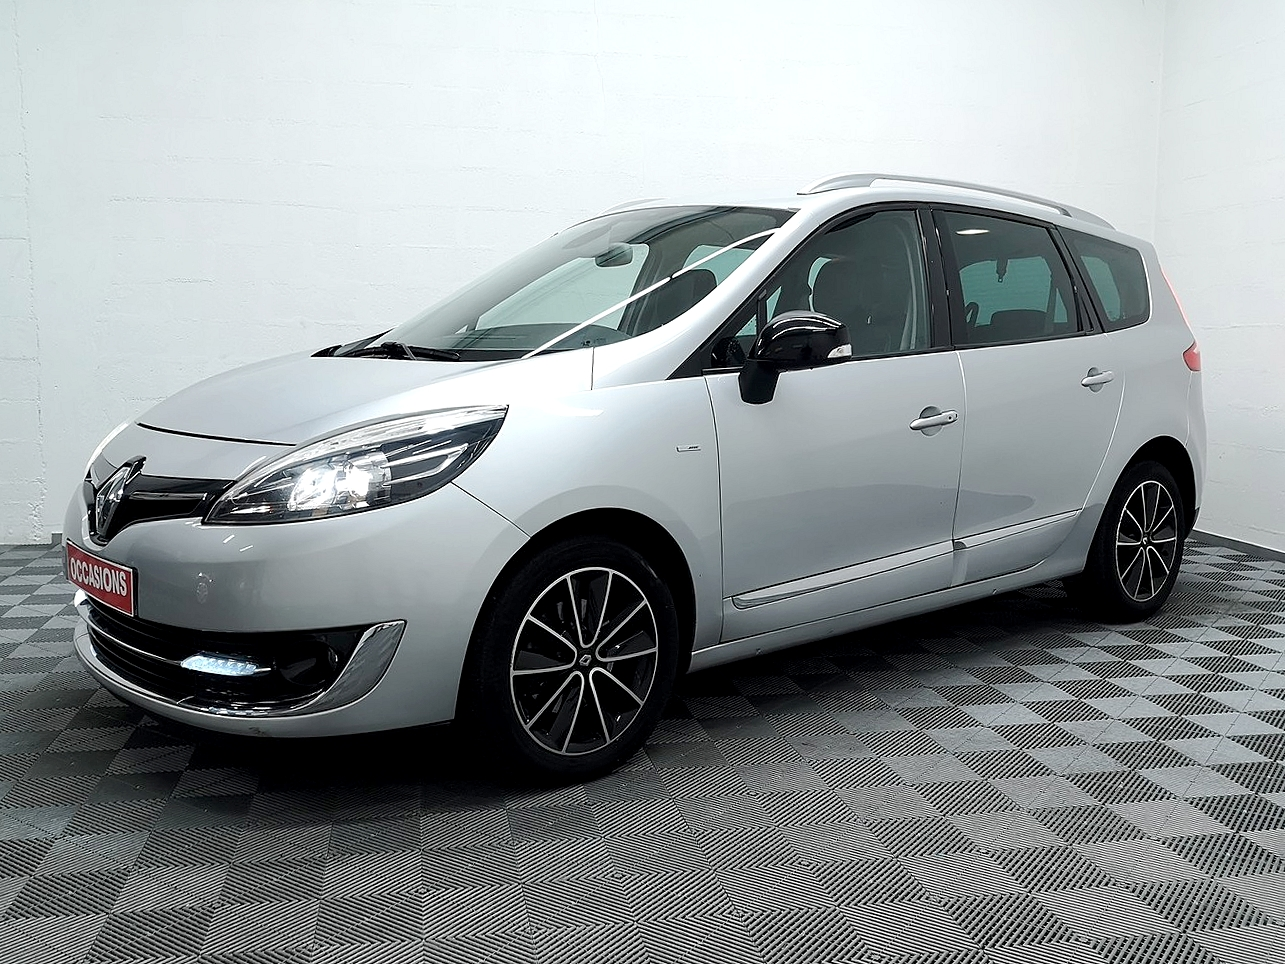 RENAULT GRAND SCENIC III dCi 130 Energy FAP eco2 Bose  7 pl d'occasion